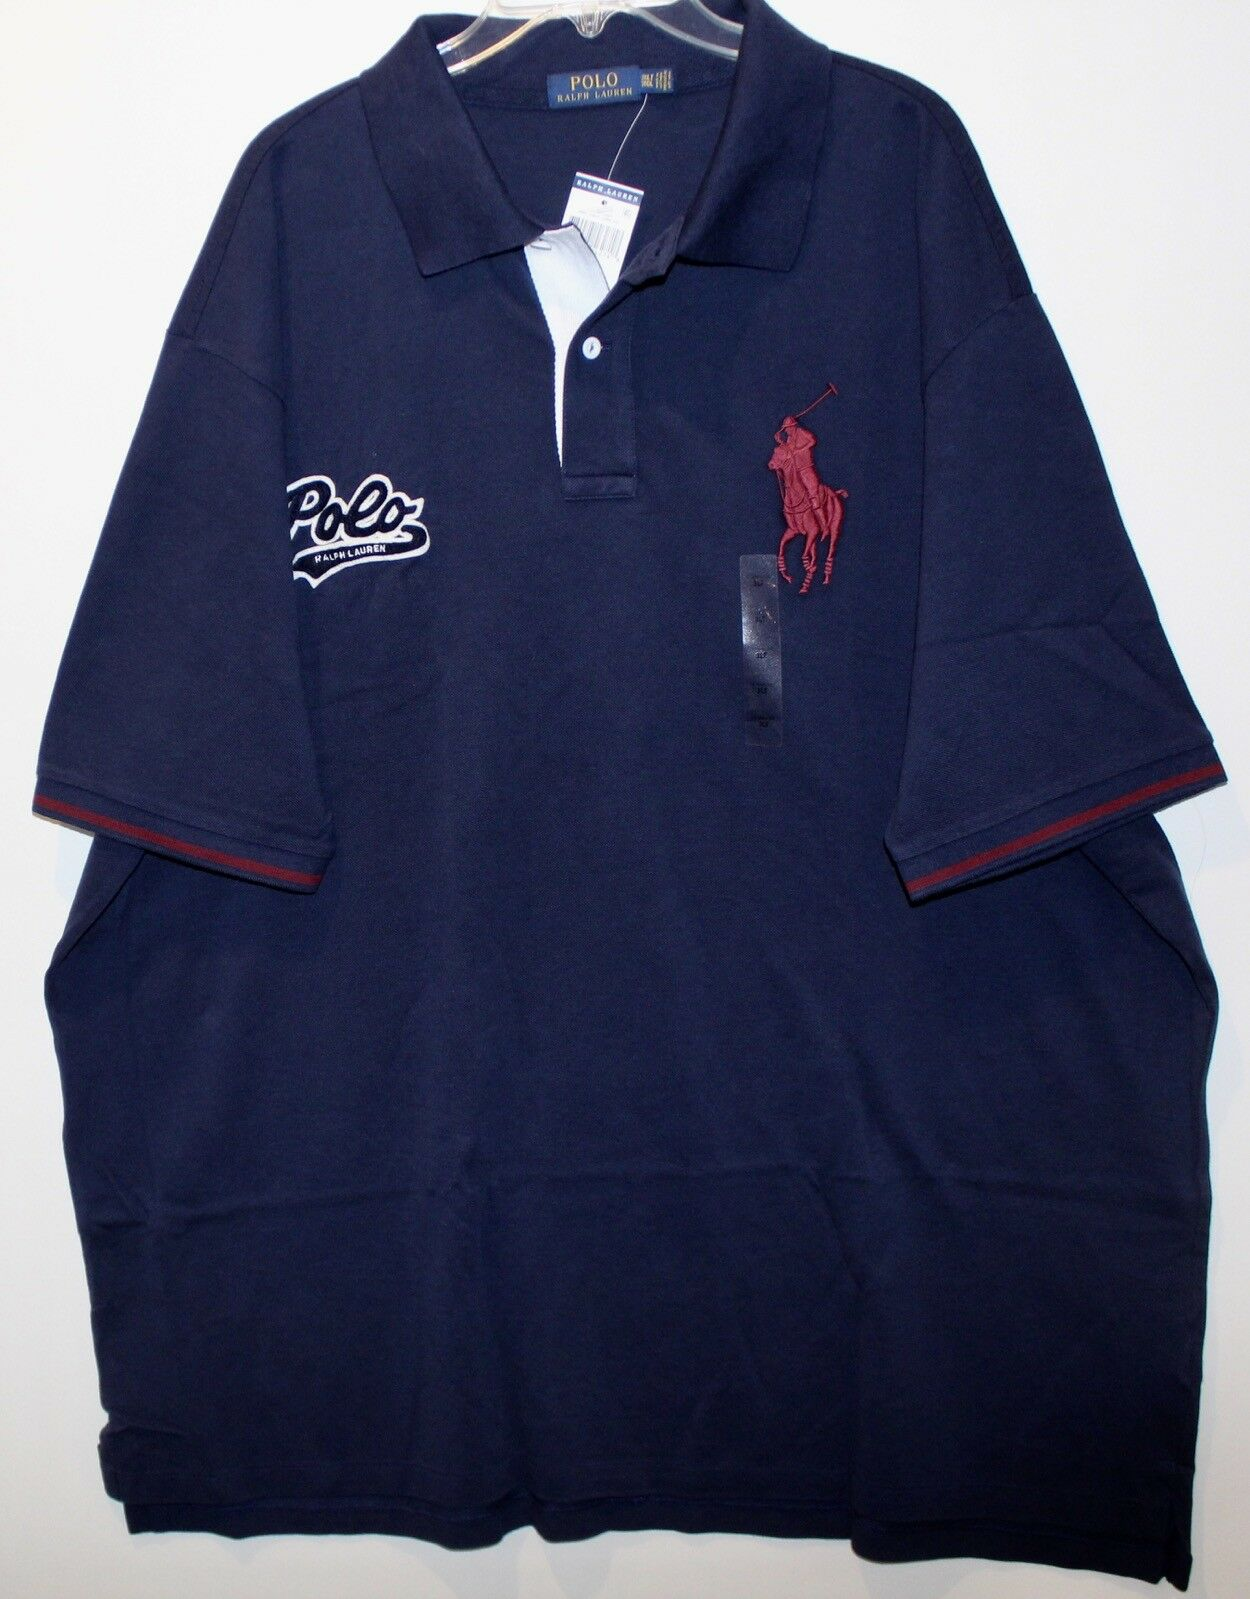 Polo Ralph Lauren Big and Tall Mens Navy bluee Polo Big Pony Rugby Shirt NWT XLT